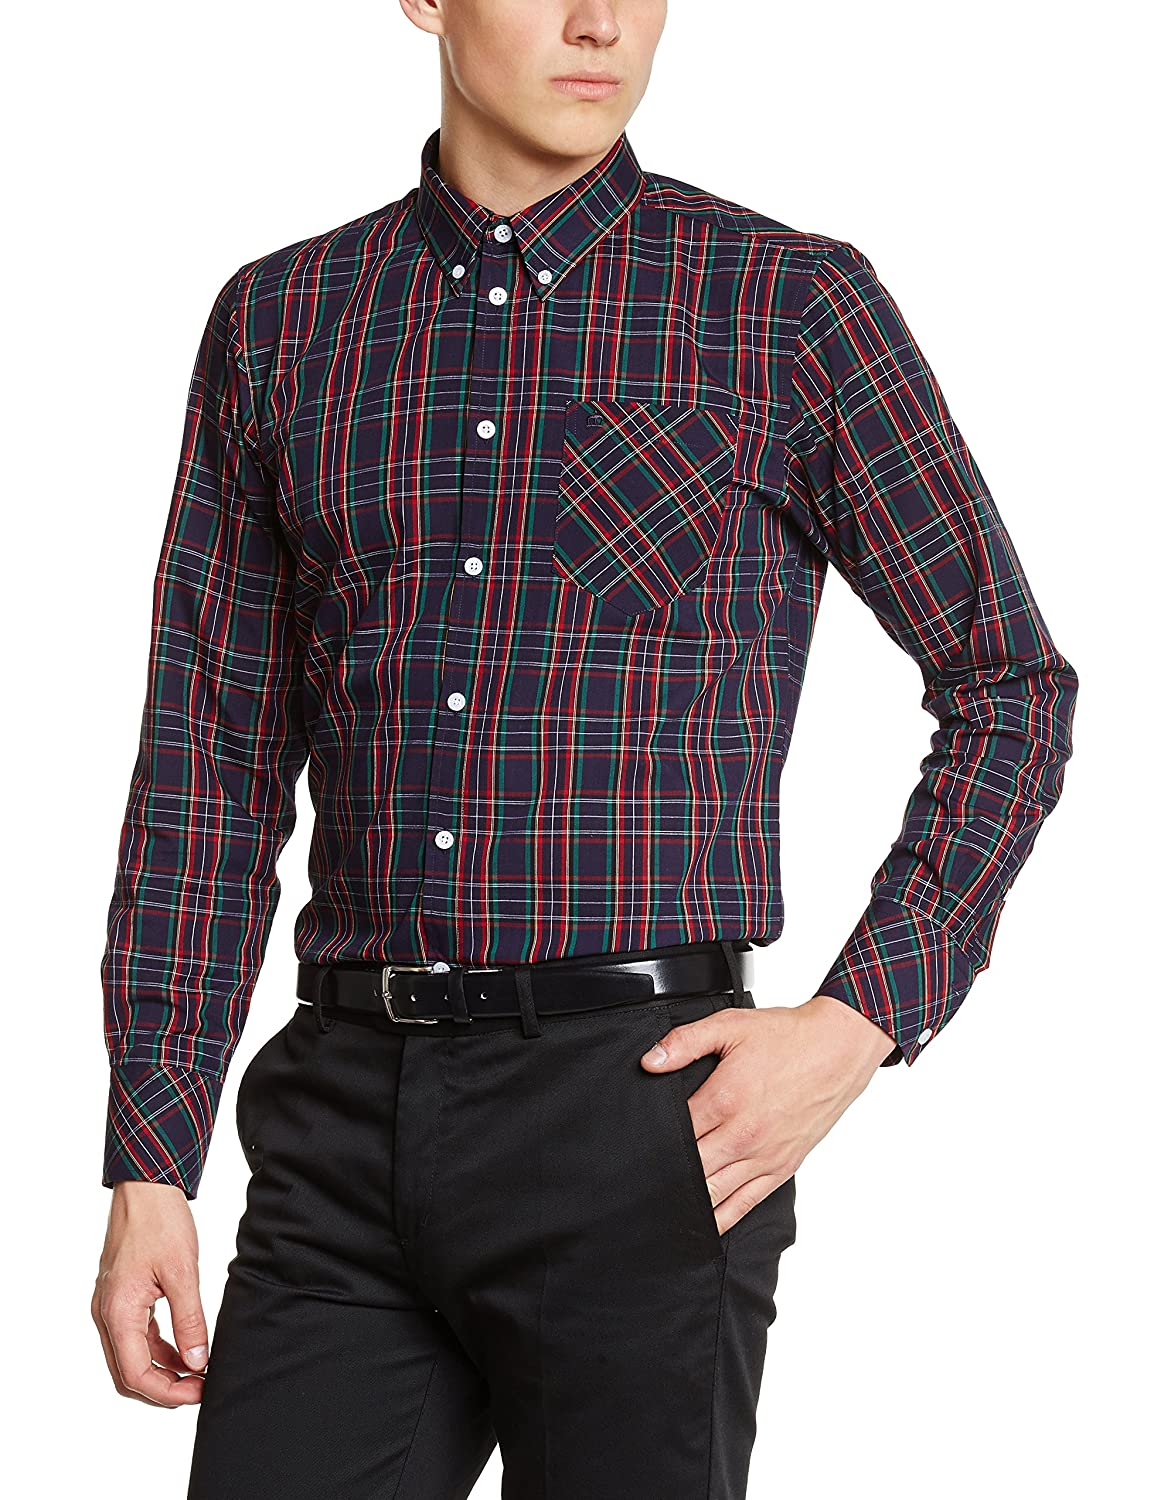 Merc of London Camisa para Hombre